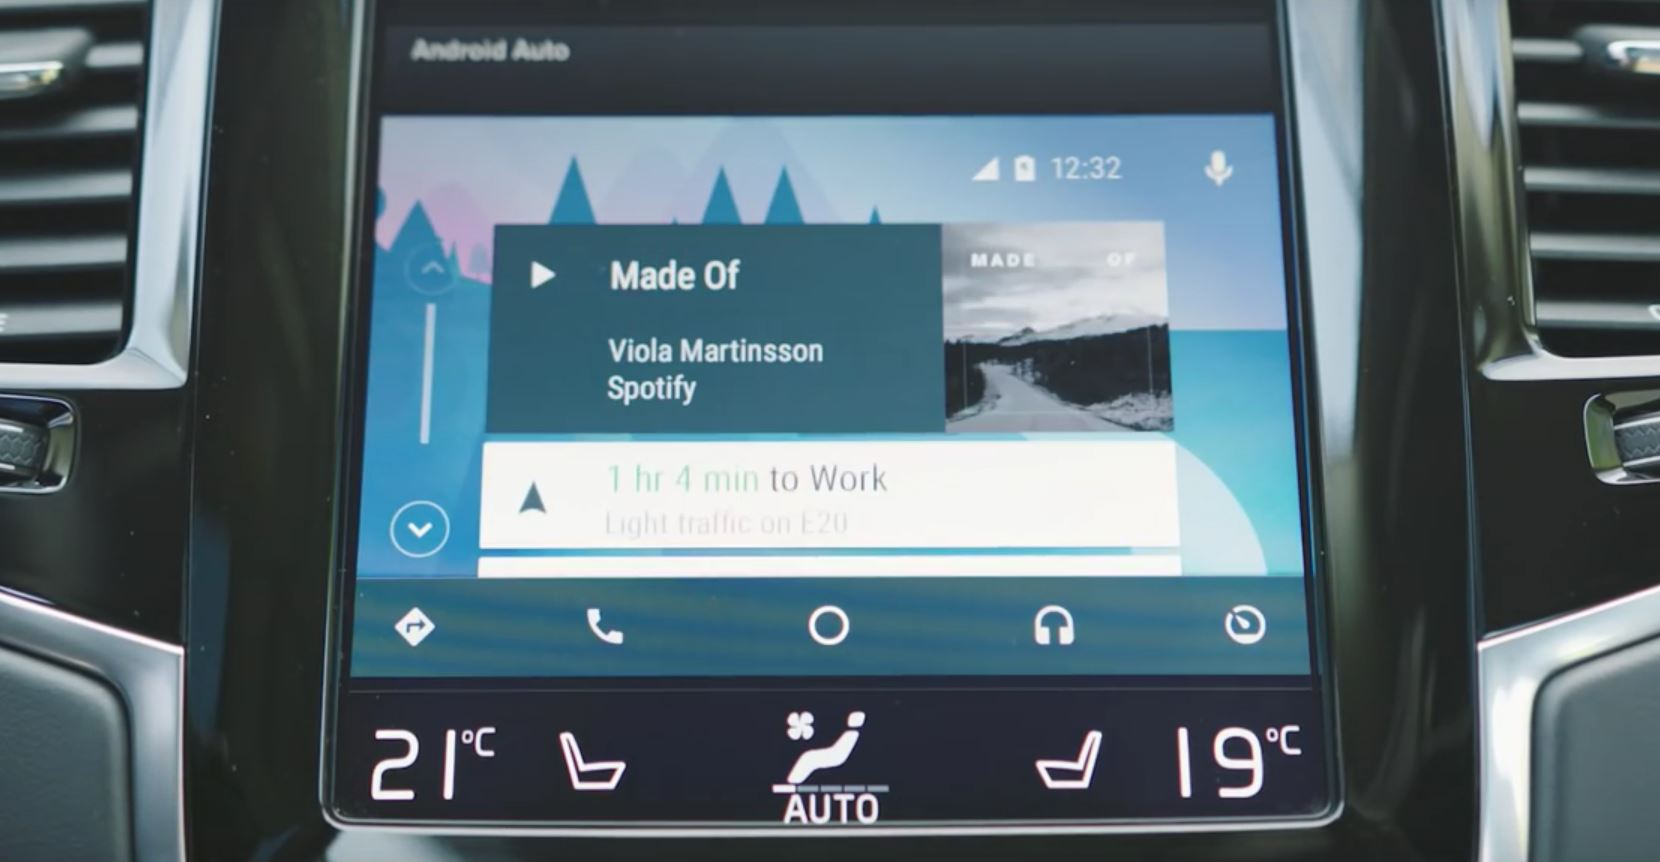 Why Volvo Thinks Its Apple CarPlay and Android Auto Are The Best - autoevolution